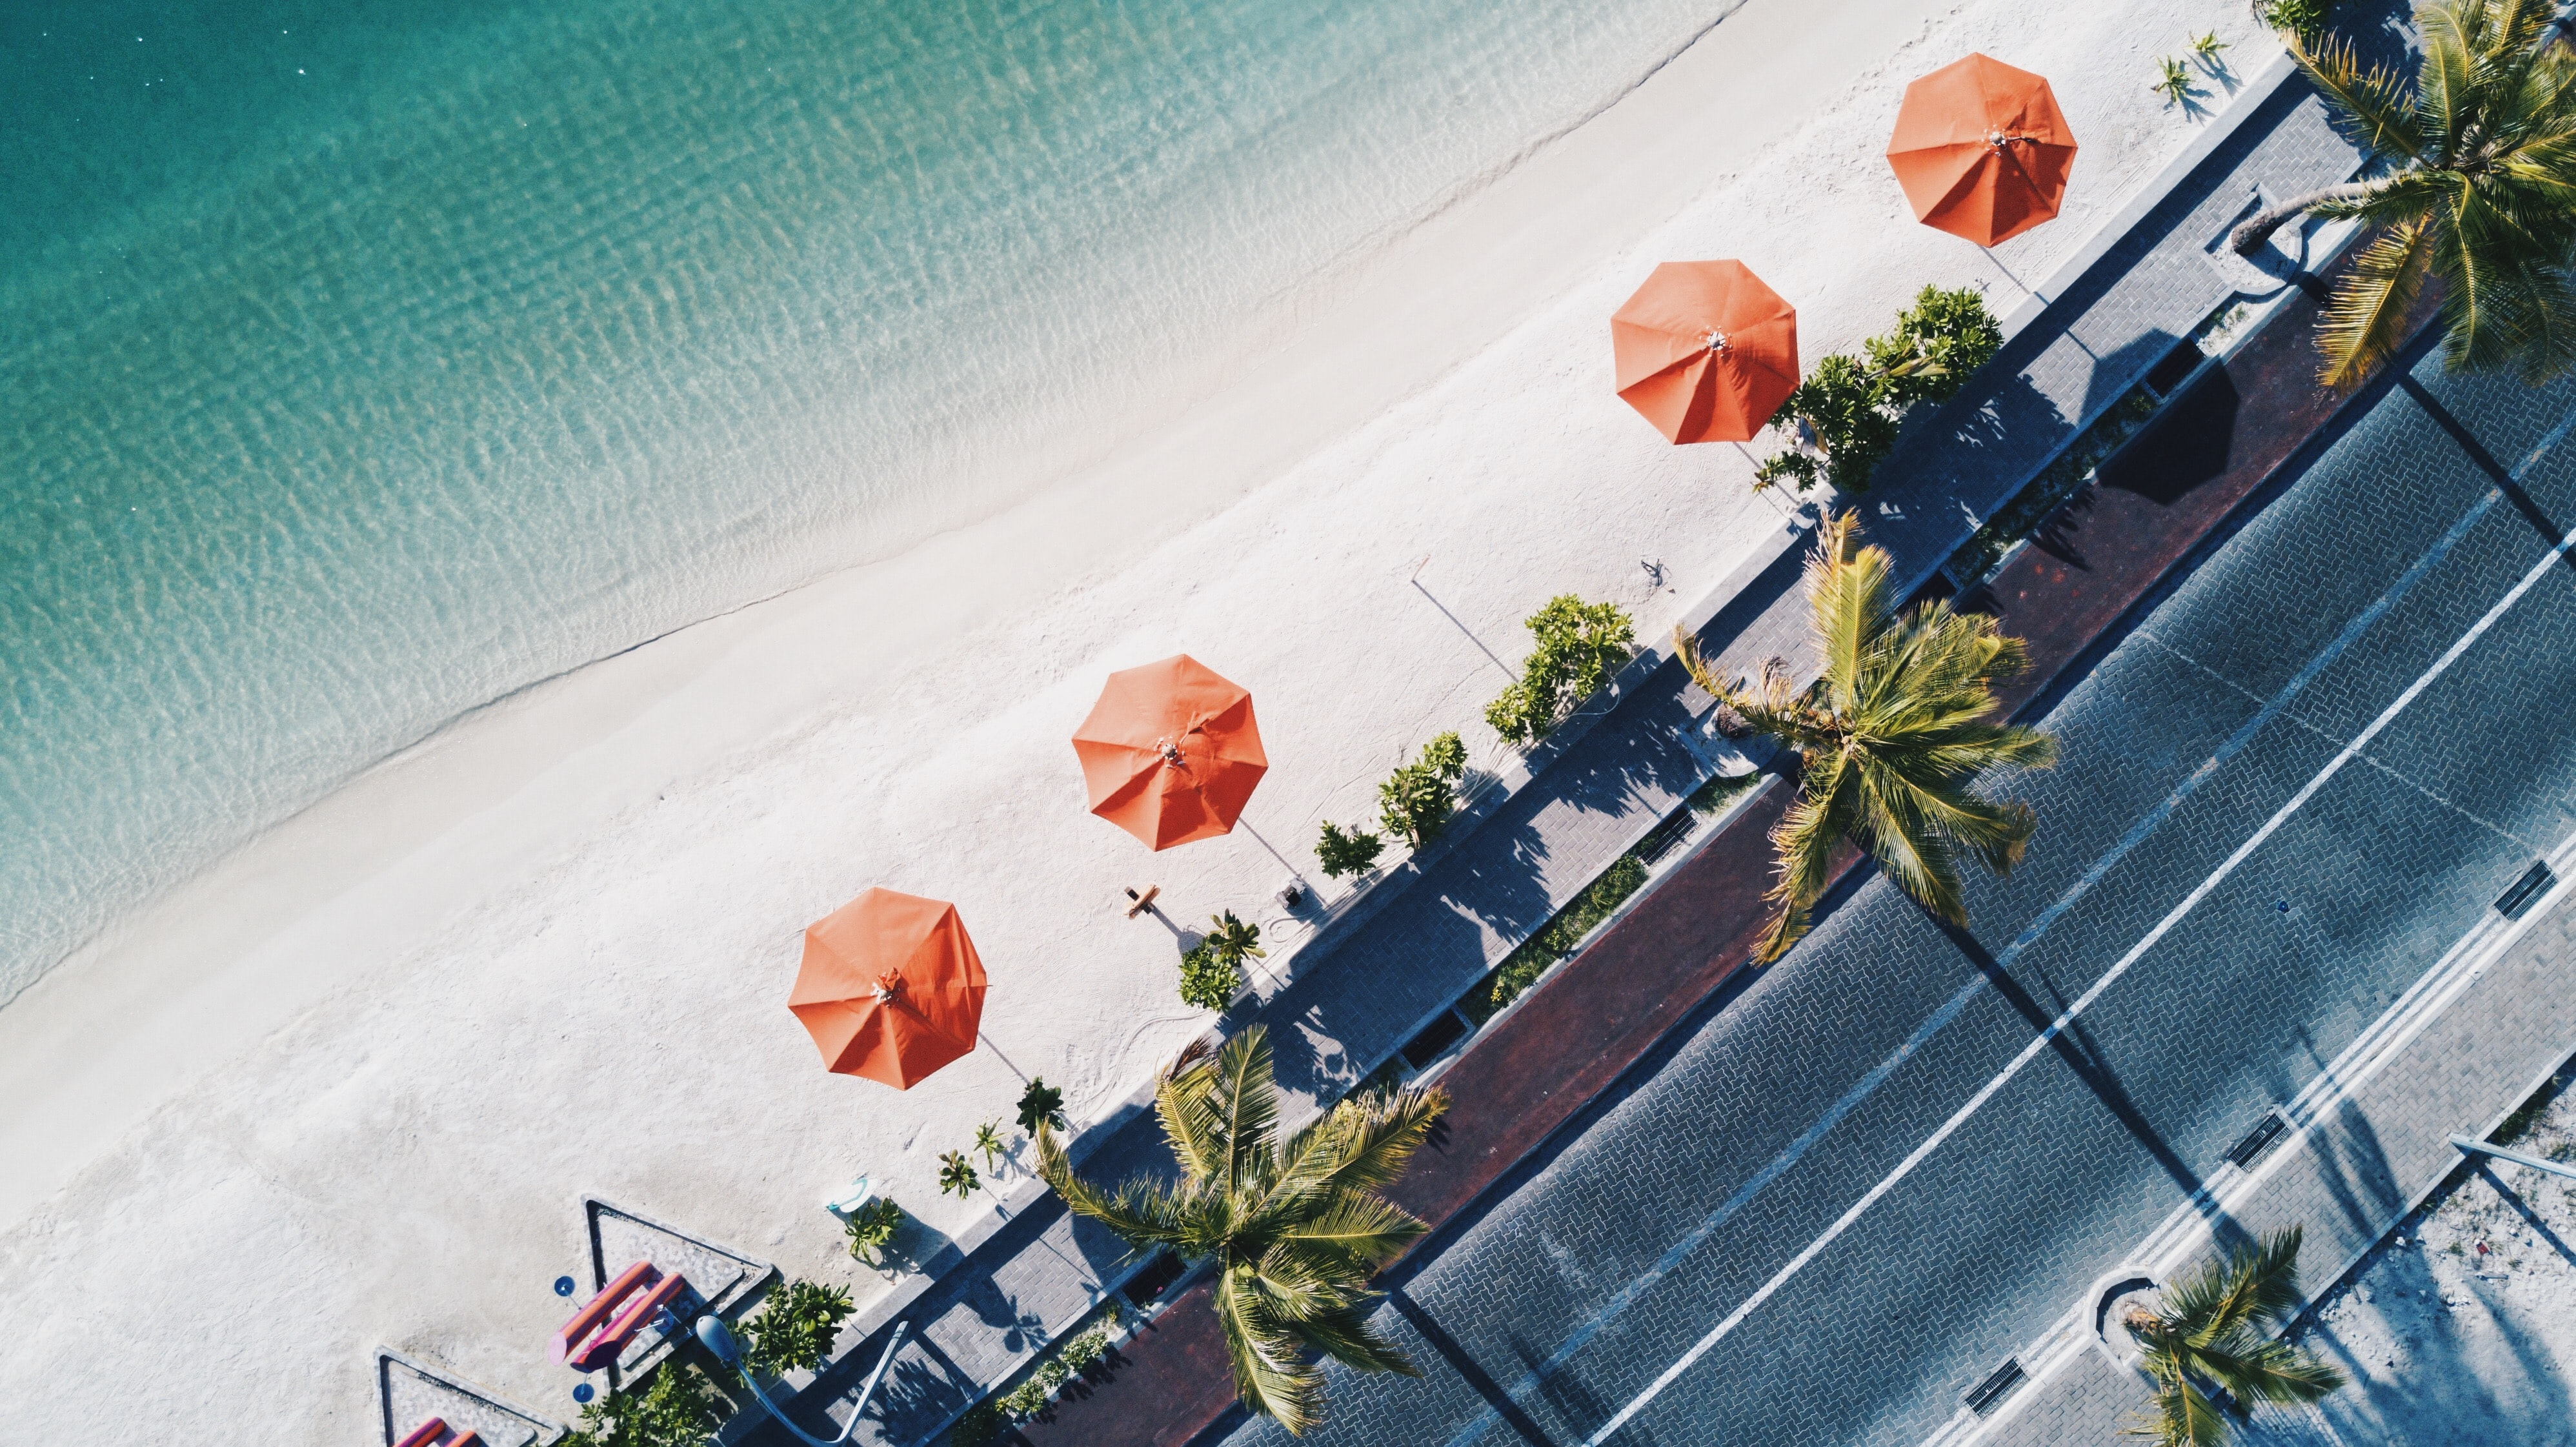 Drone aerial view of footpath, palm trees, and sun umbrellas by the sand beach in Rasfannu